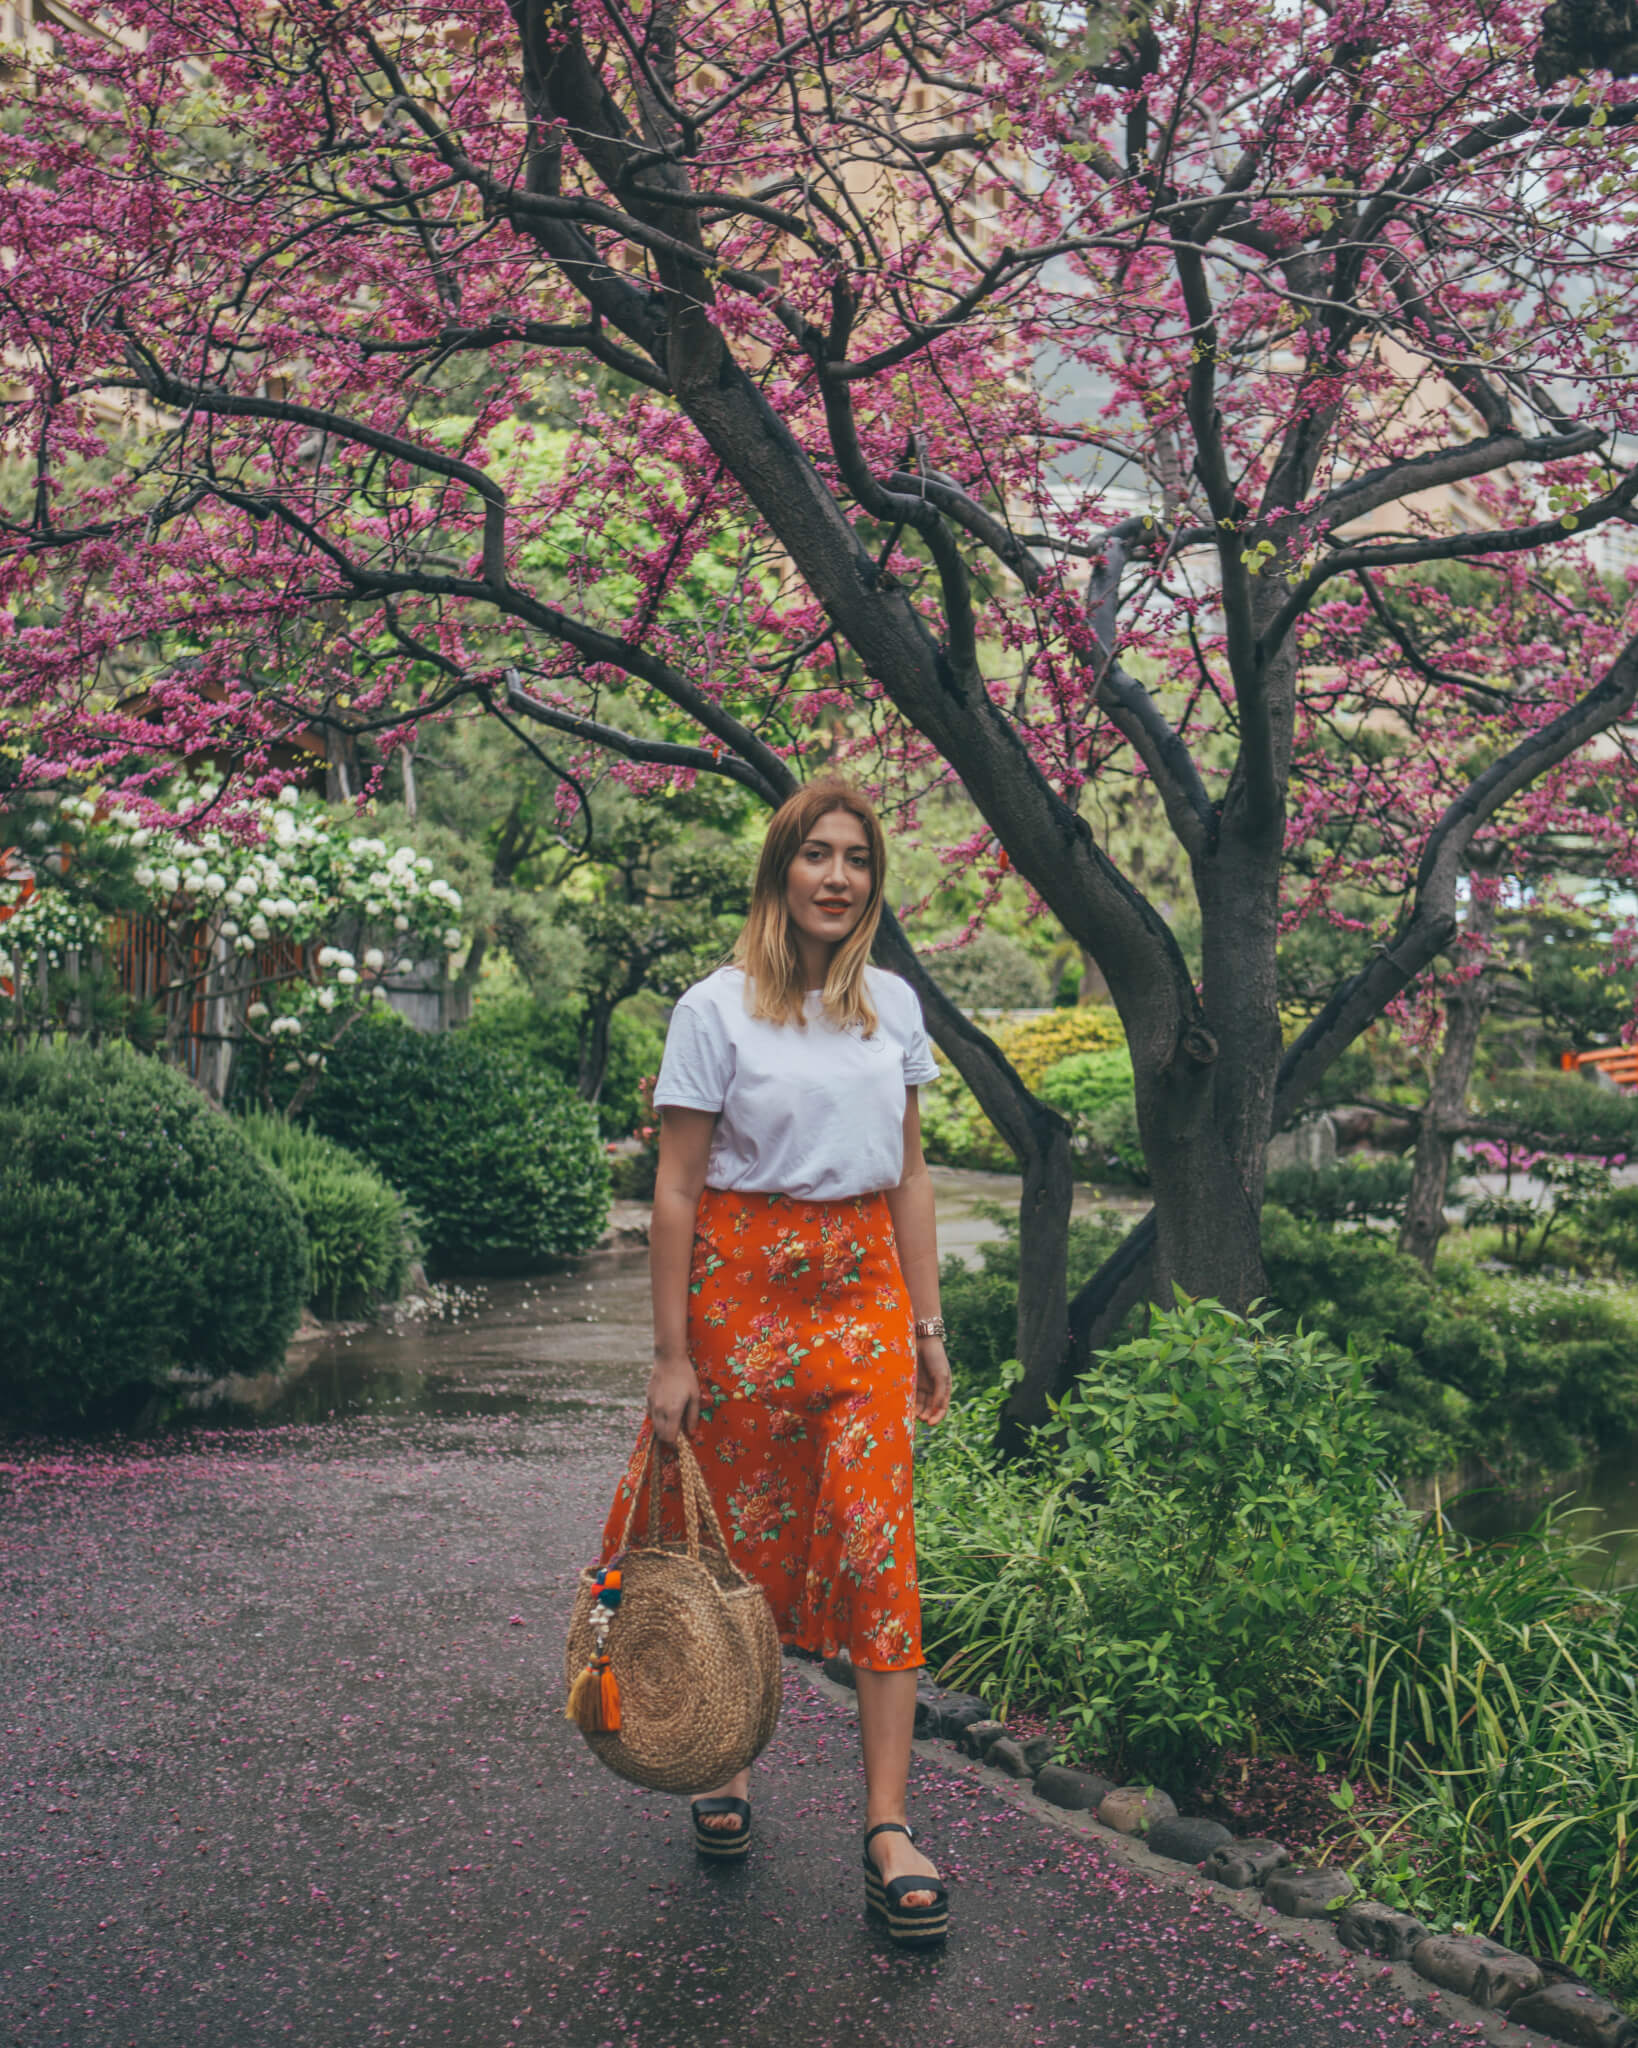 Japanese Garden Monaco - What I Wore